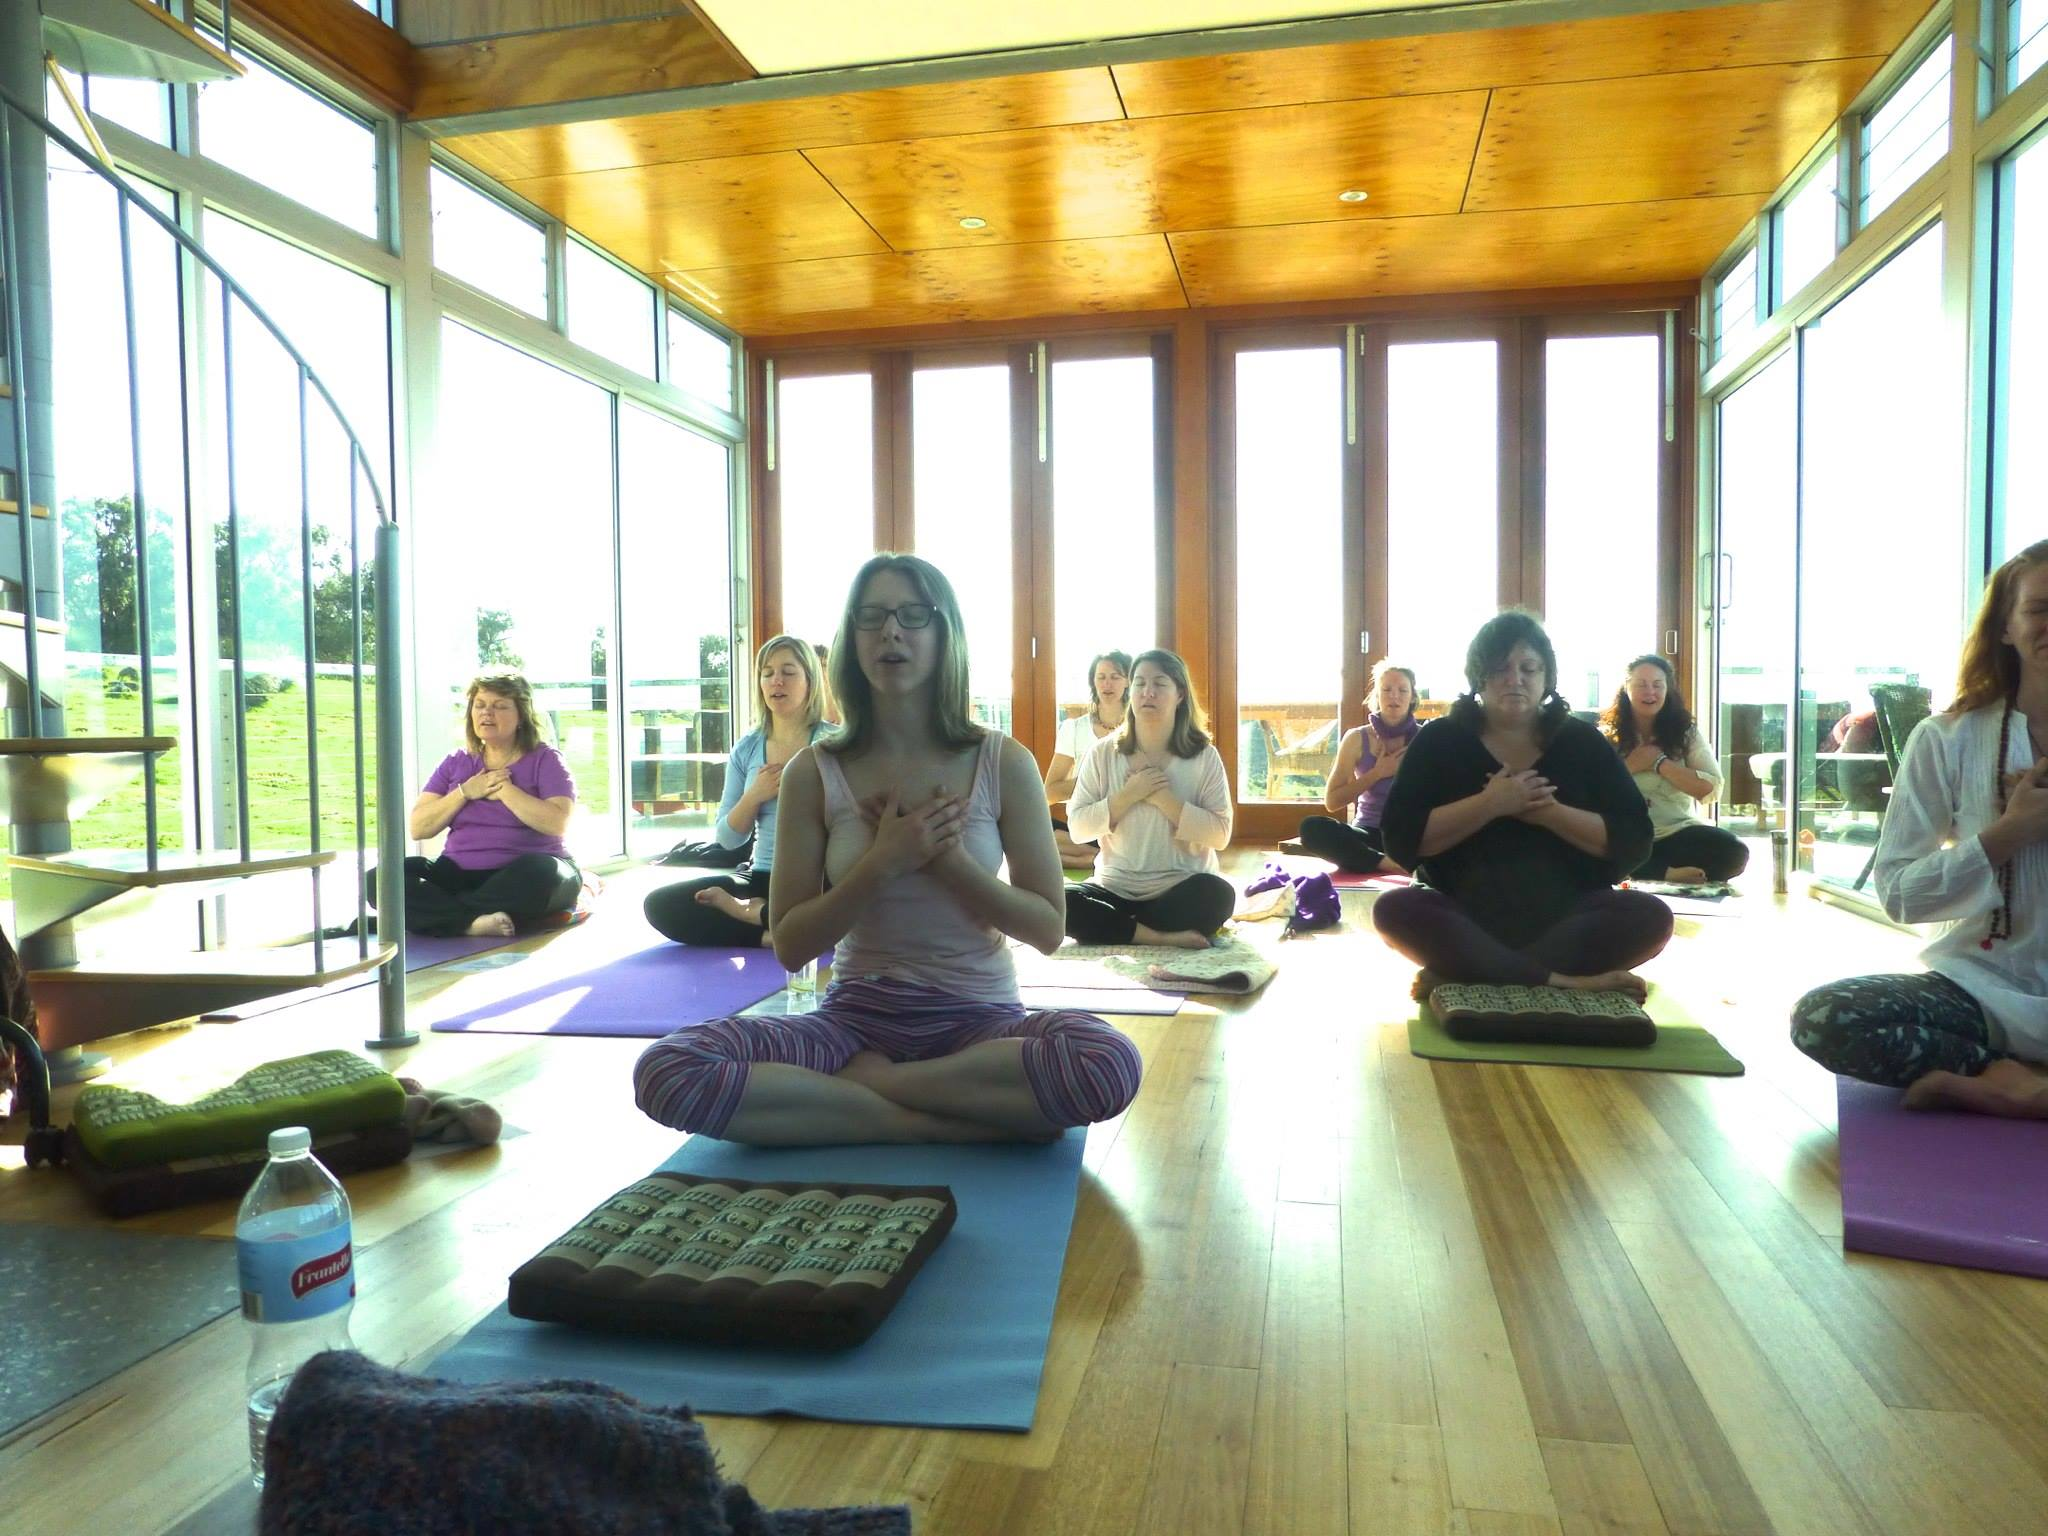 At the eco lodge - Sacred Women's Soul Retreat Kundalini Yoga class